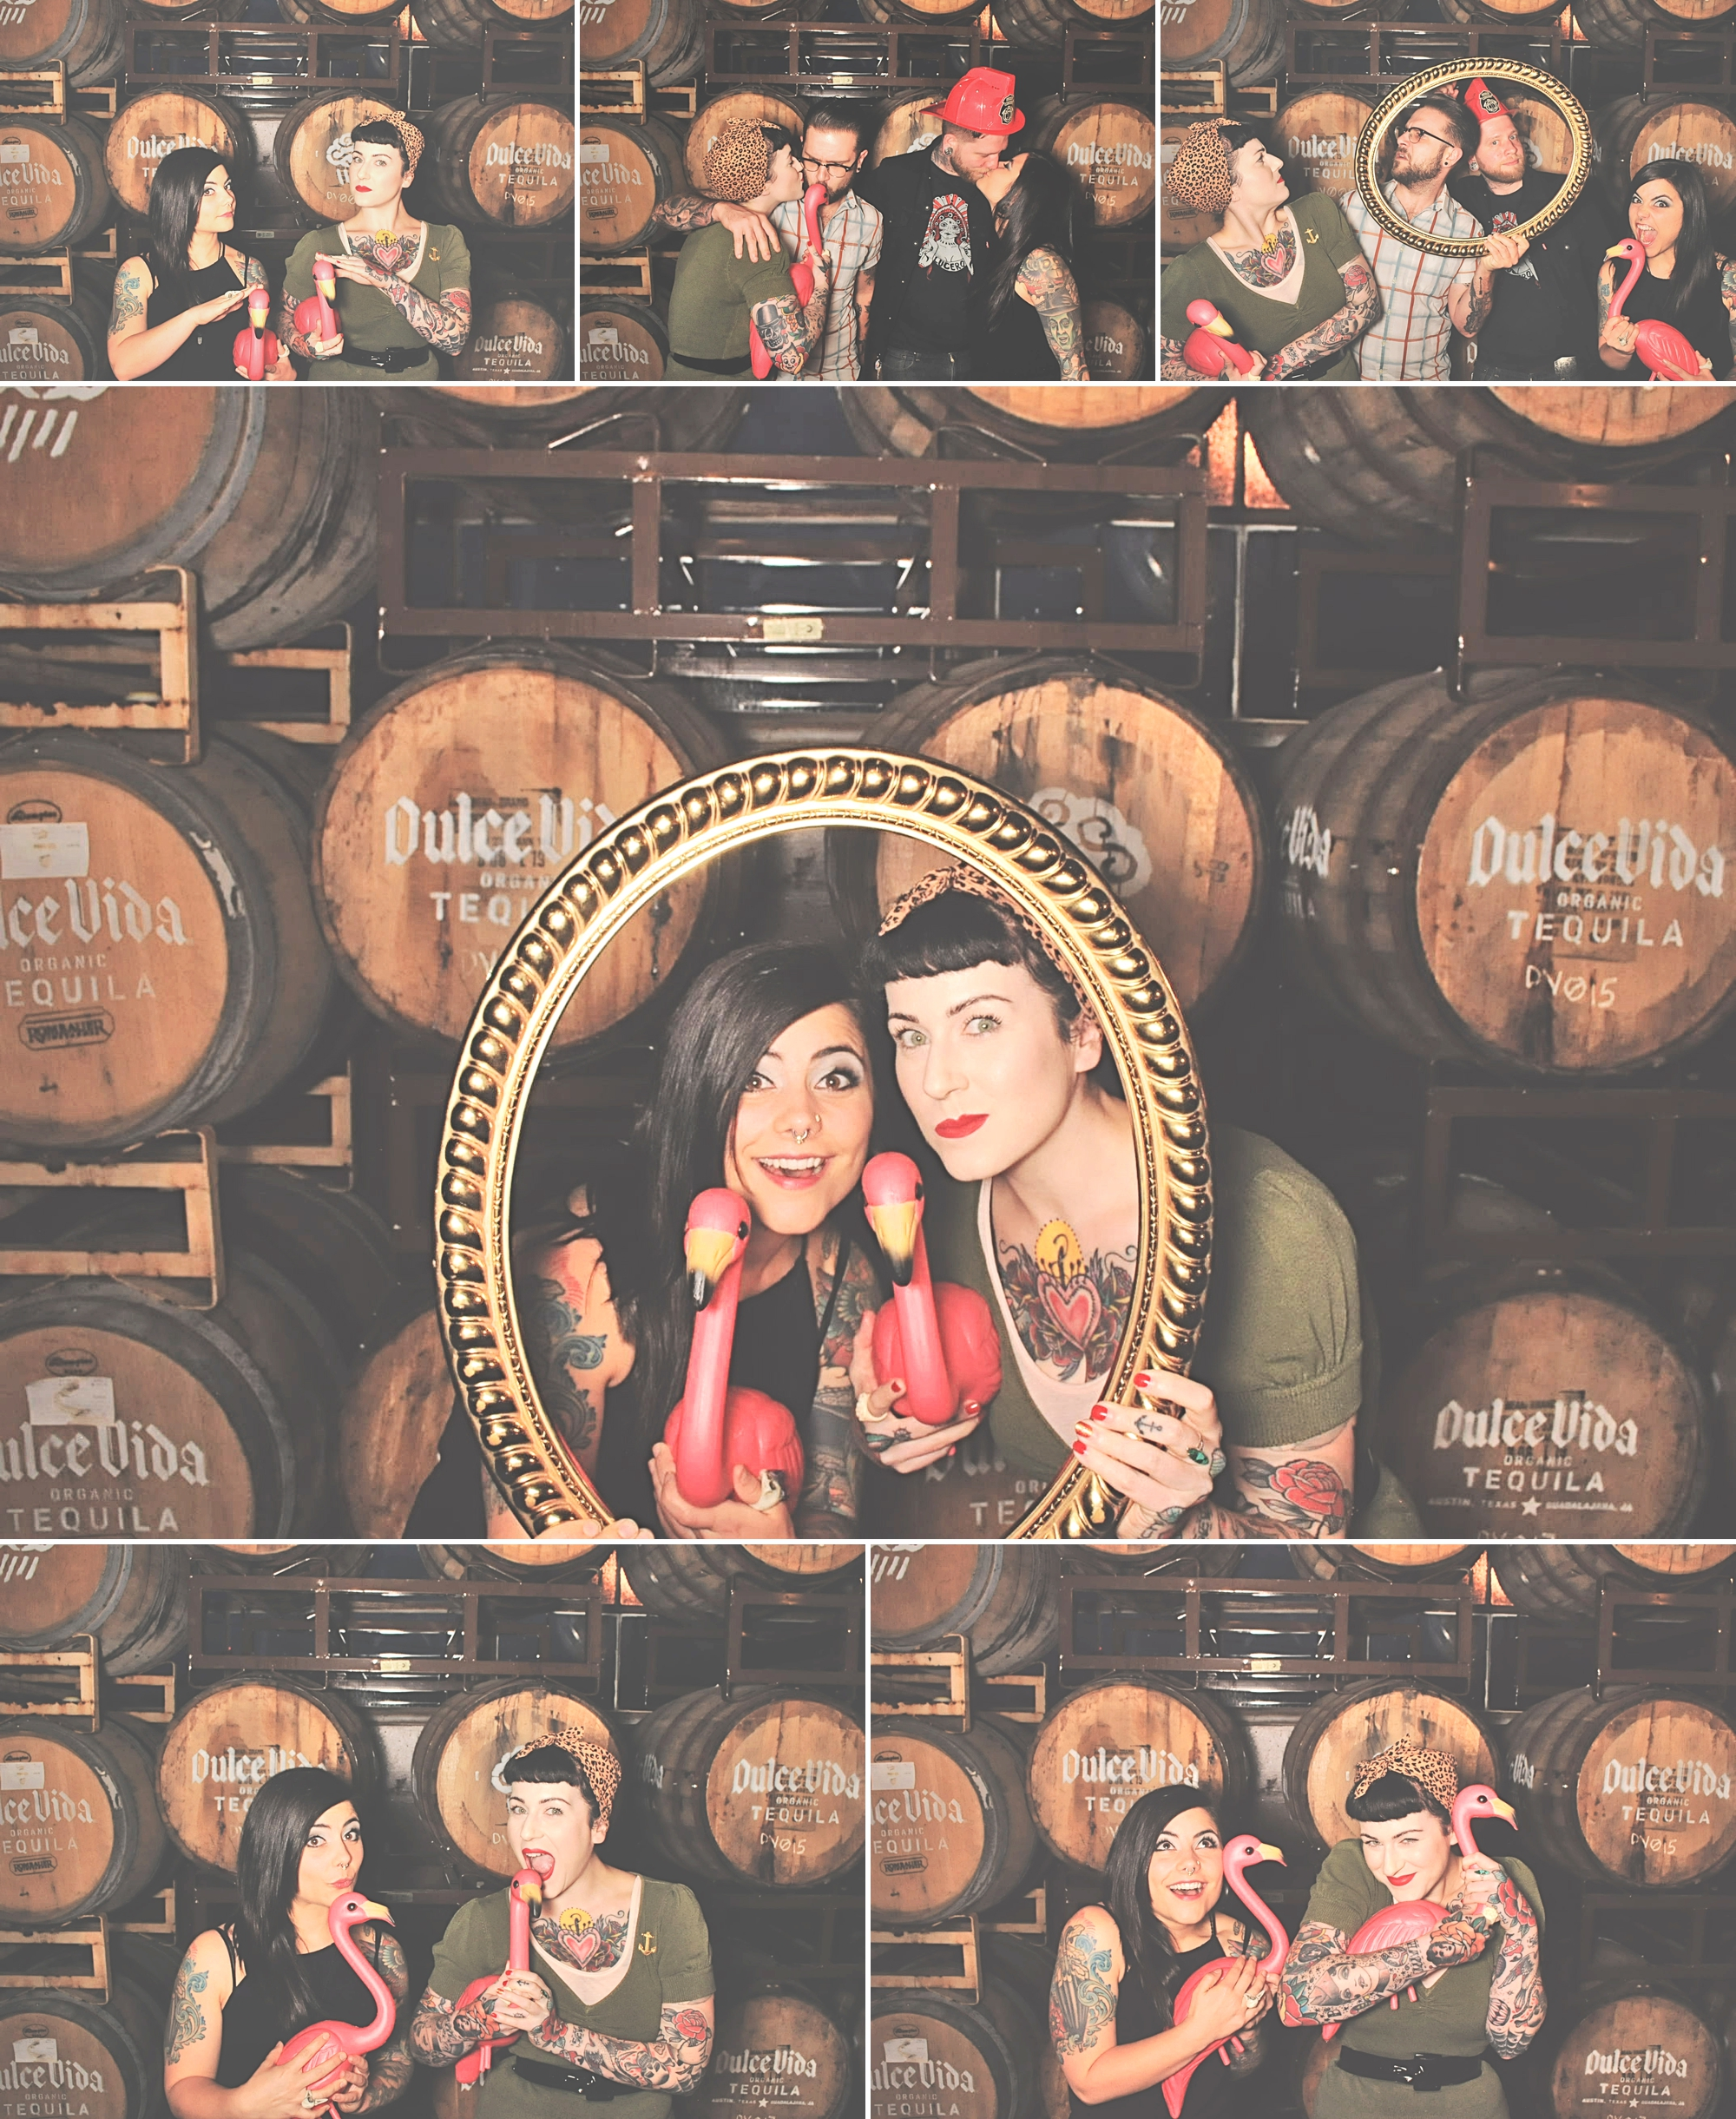 Atlanta Wild Heaven Craft Beers Brewery PhotoBooth - 10-Year Anniversary - RobotBooth 10